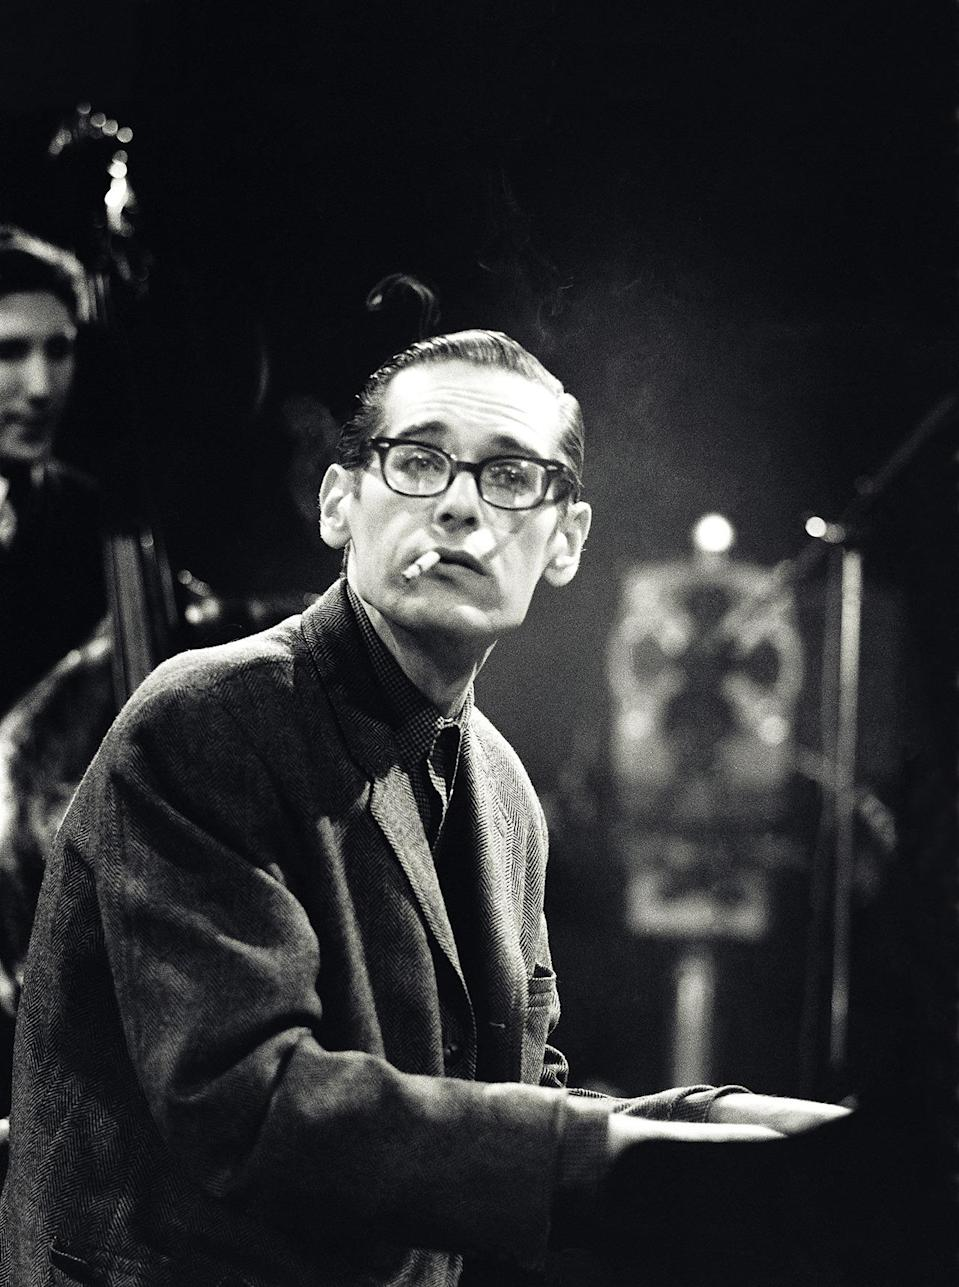 <p>Pianist Bill Evans led his own ensemble, The Bill Evans Trio, in the late 1950s after having performed with the Miles Davis band. His style uniquely incorporated block chords — though somehow with the lightest touch — making for to an impressionistic performance. While playing, the guy was super cool; he was almost always smoking a cigarette as both hands perpetually moved across the keyboard. (Note: Smoking kills!) <i>(Photo: Getty Images)</i></p>